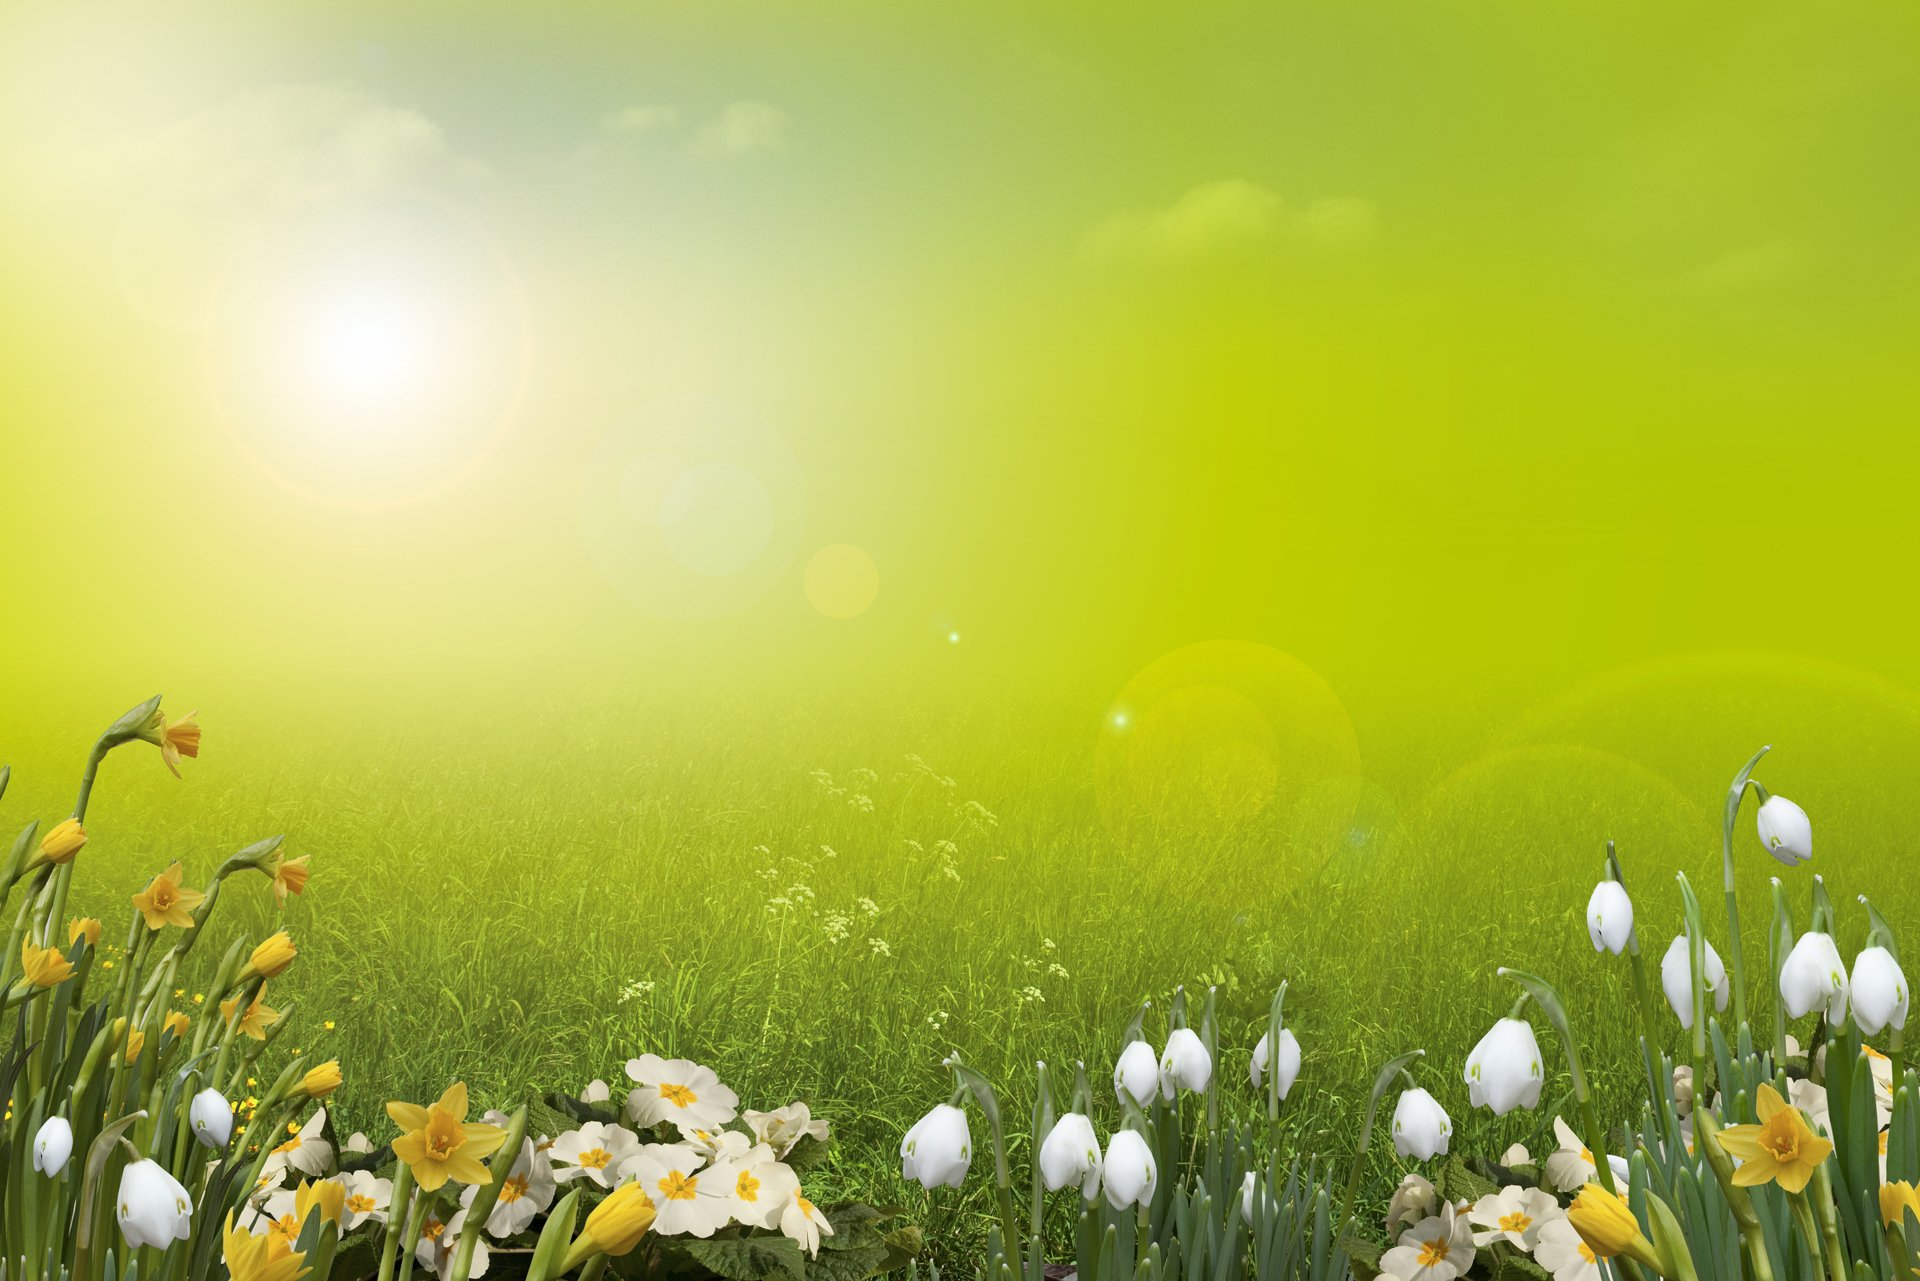 Spring background pictures free wallpapersafari - Backgrounds springtime ...